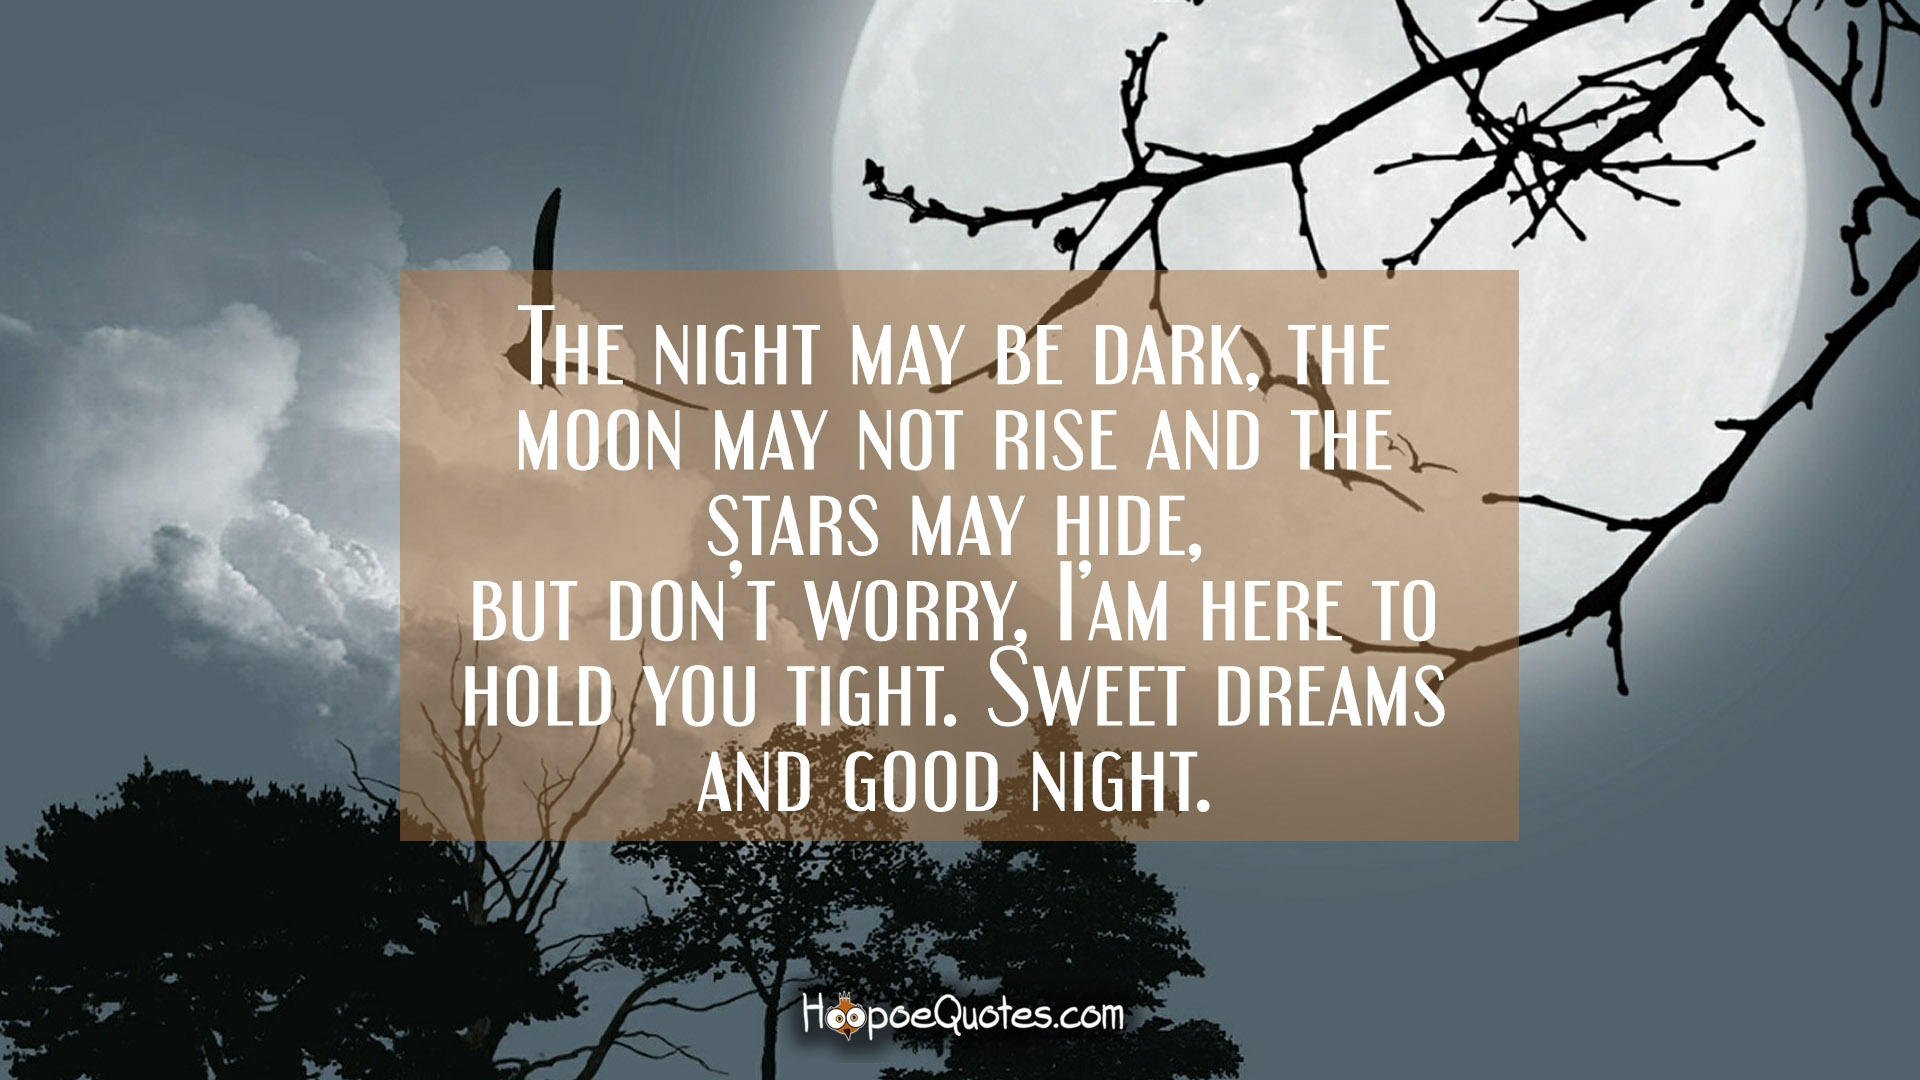 220 Hd Images Good Night Messages Unique Wishes Quotes And